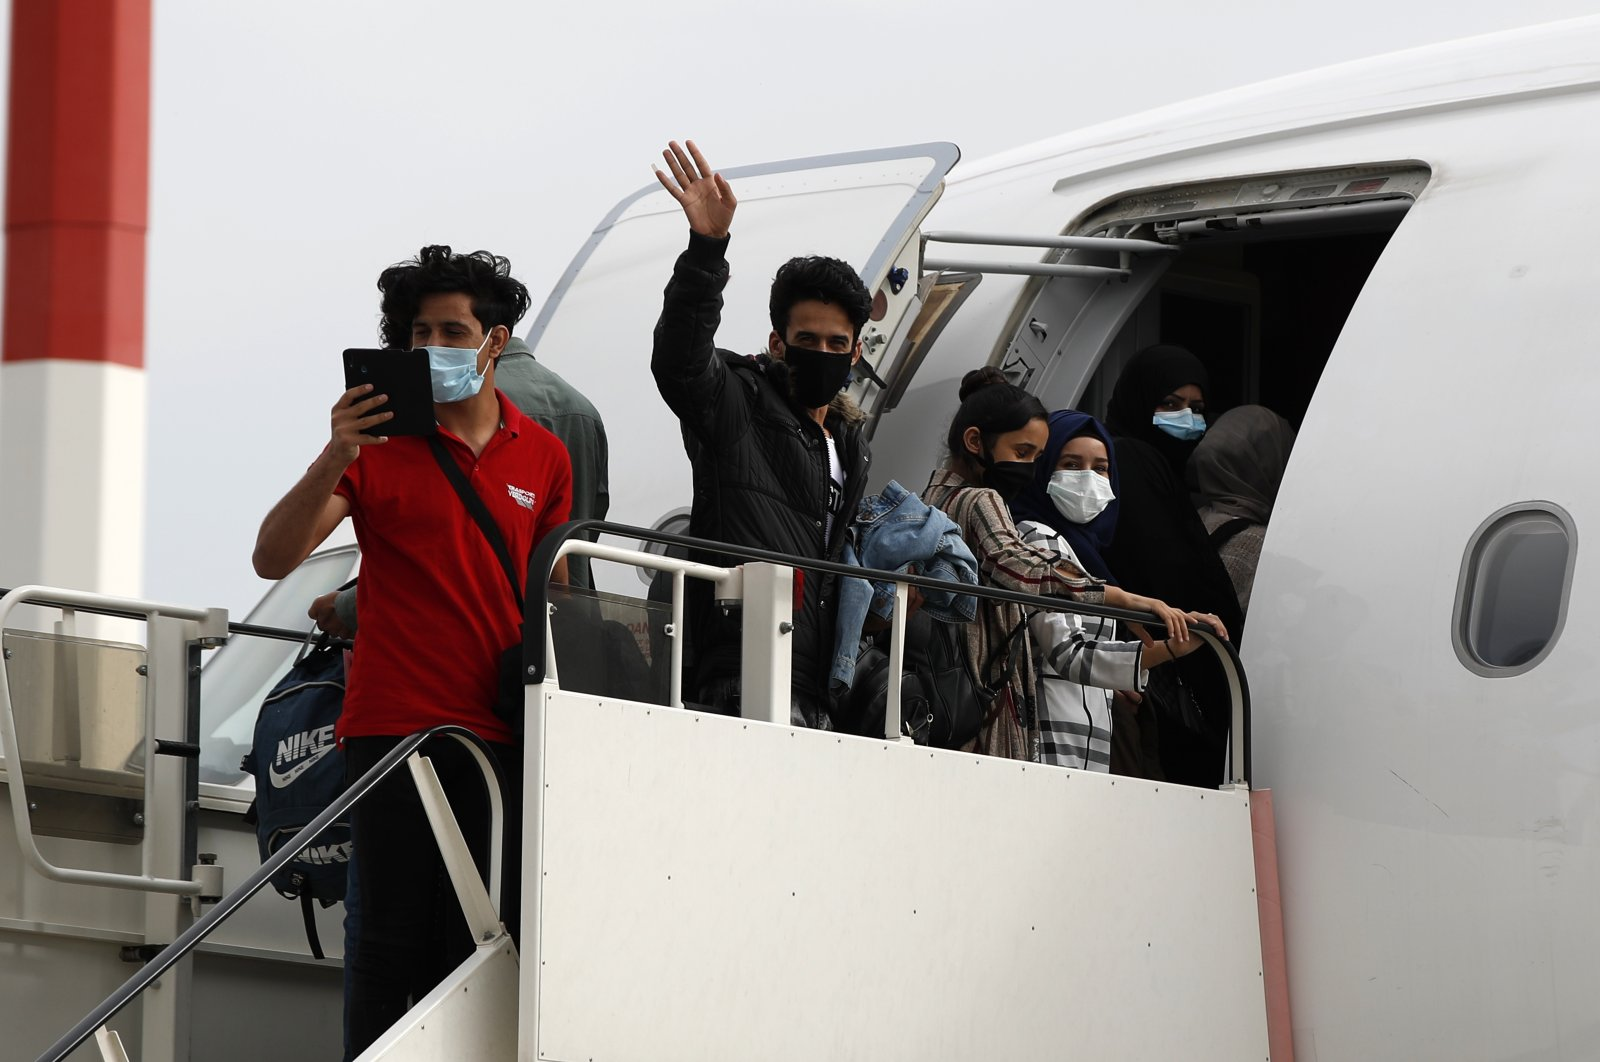 Migrants wearing face masks to prevent the spread of the coronavirus, board an airplane bound for Britain at the Eleftherios Venizelos International Airport in Athens, May 11, 2020. (AP)